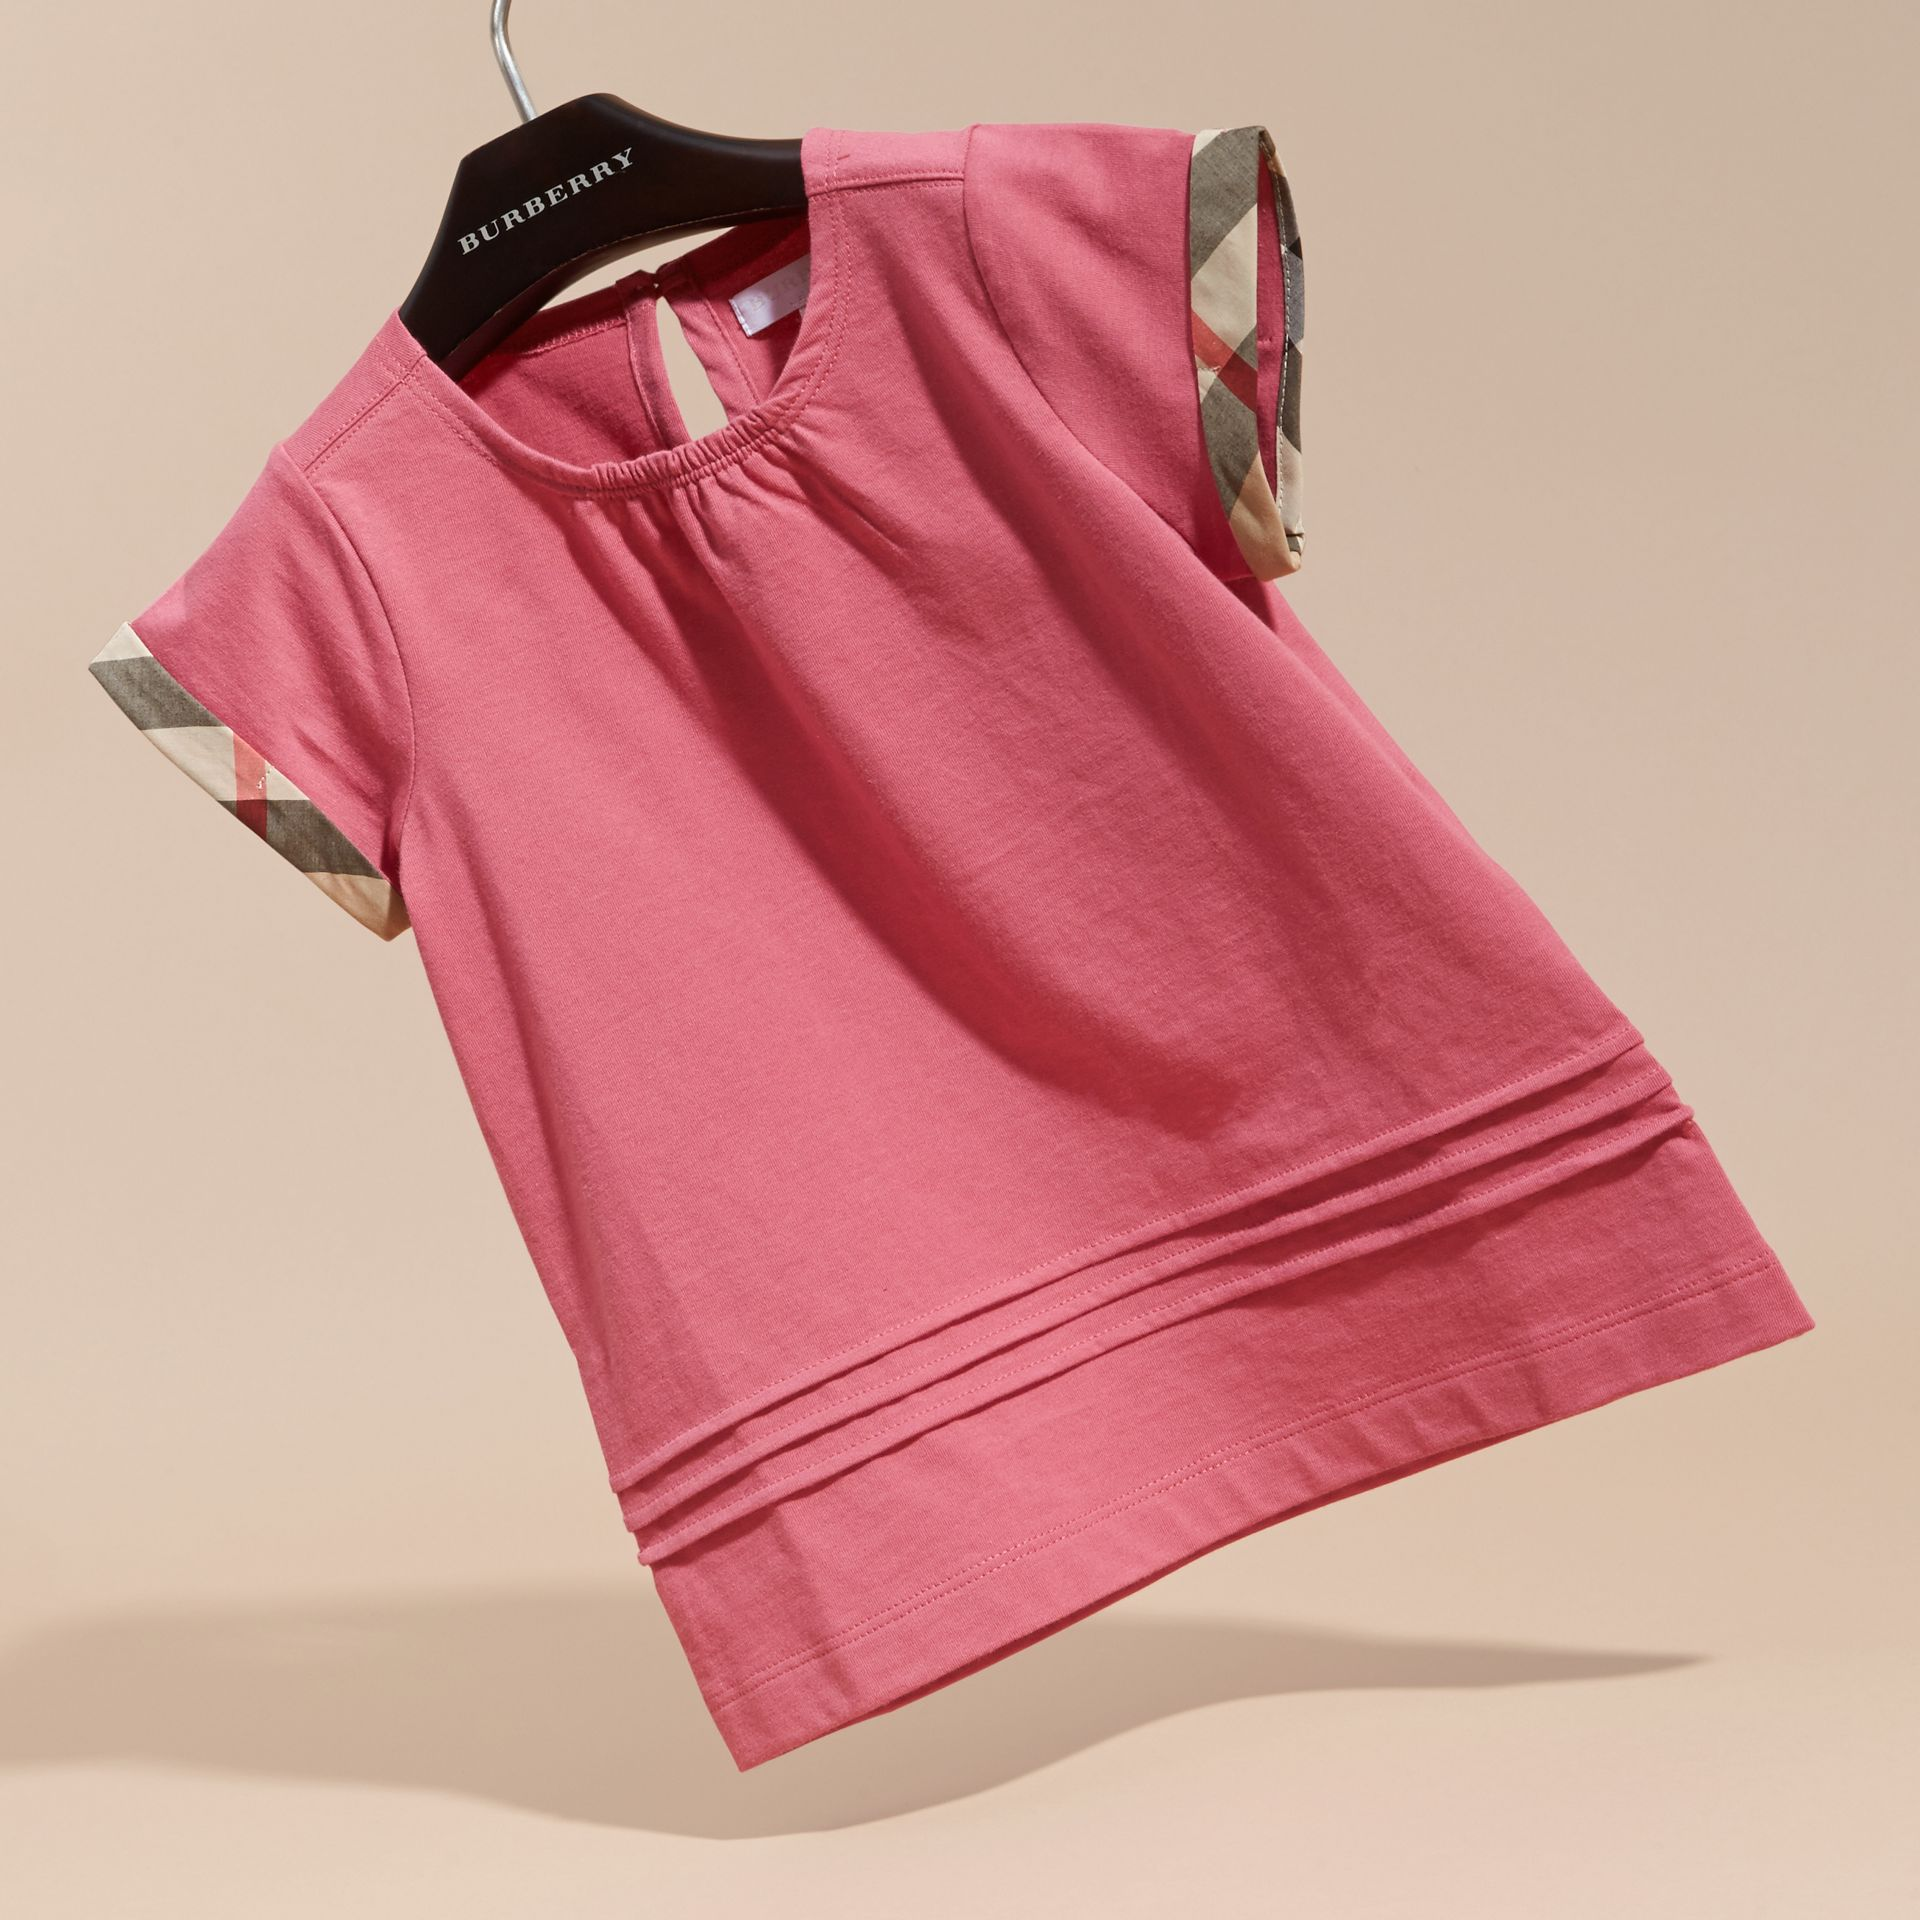 Pink azalea Pleat and Check Detail Cotton T-shirt Pink Azalea - gallery image 3